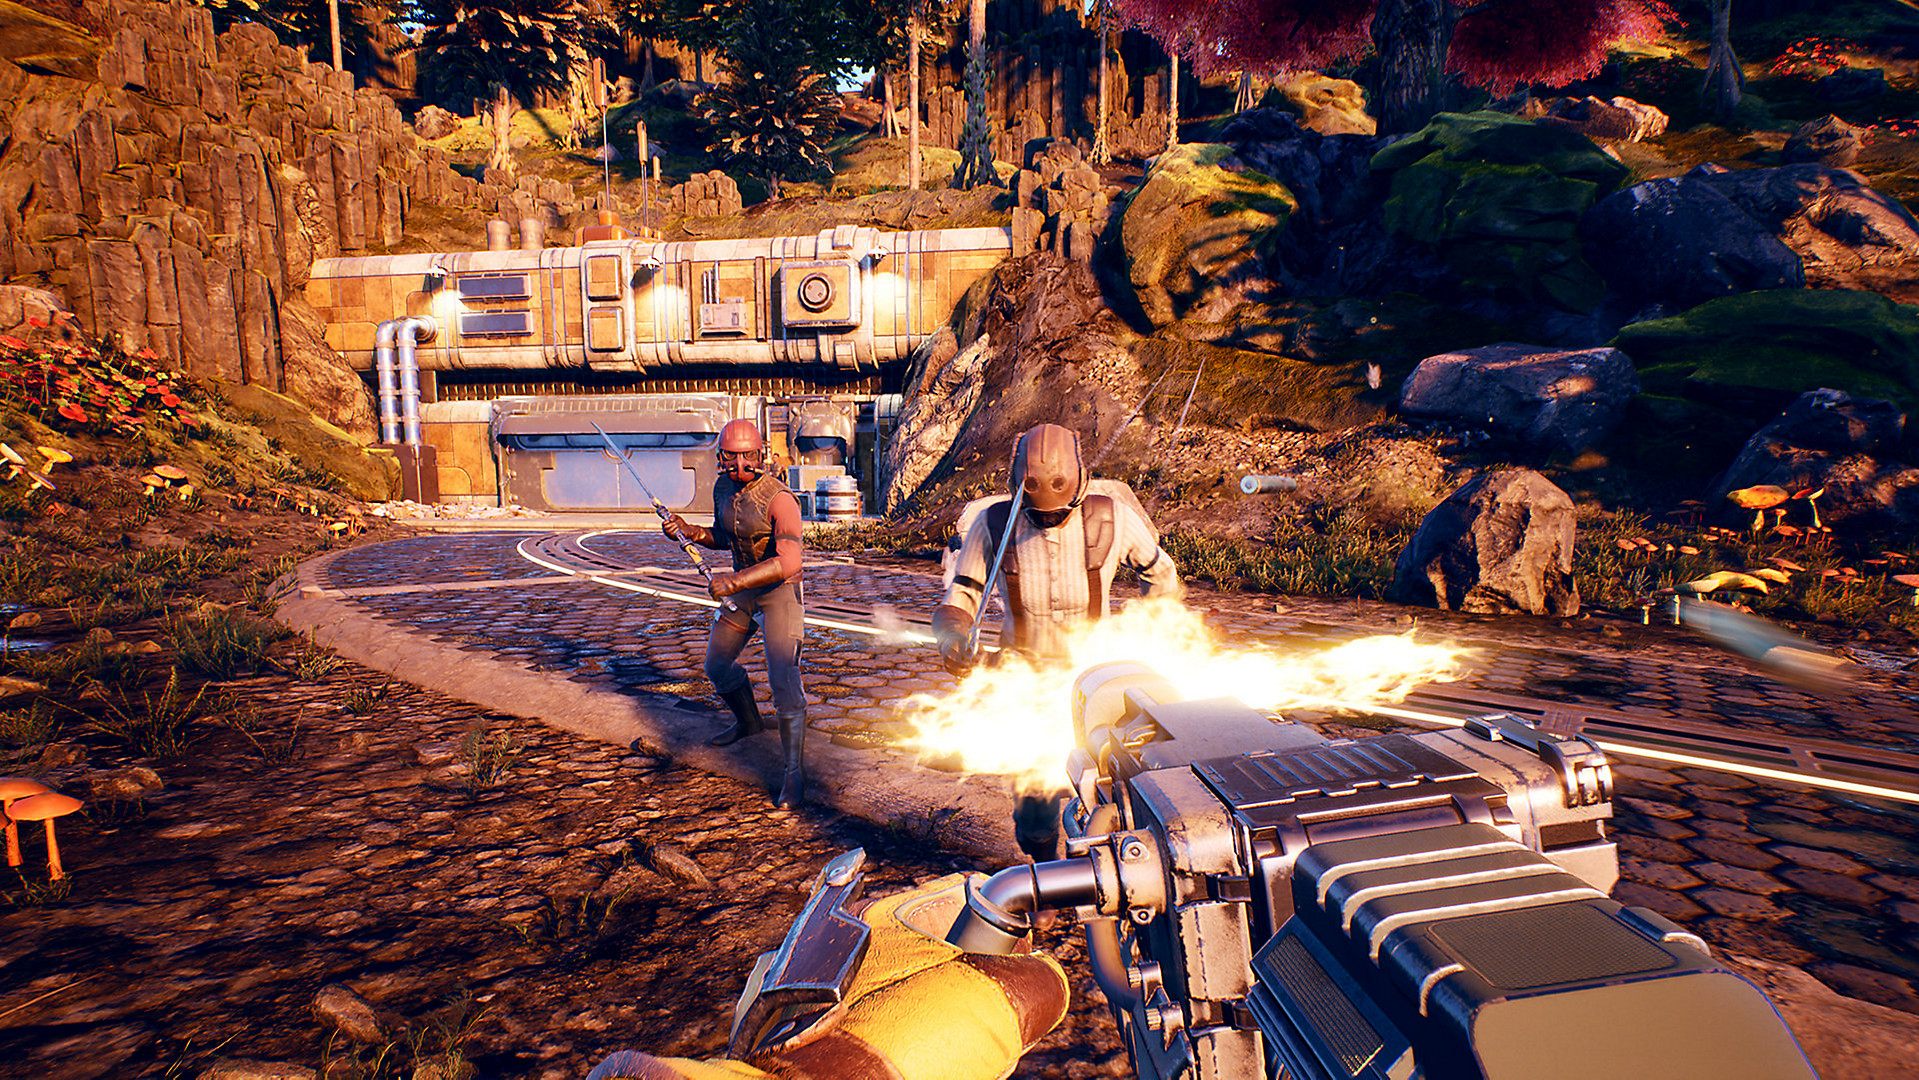 outer-worlds-screen-09-ps4-en-us-23oct19